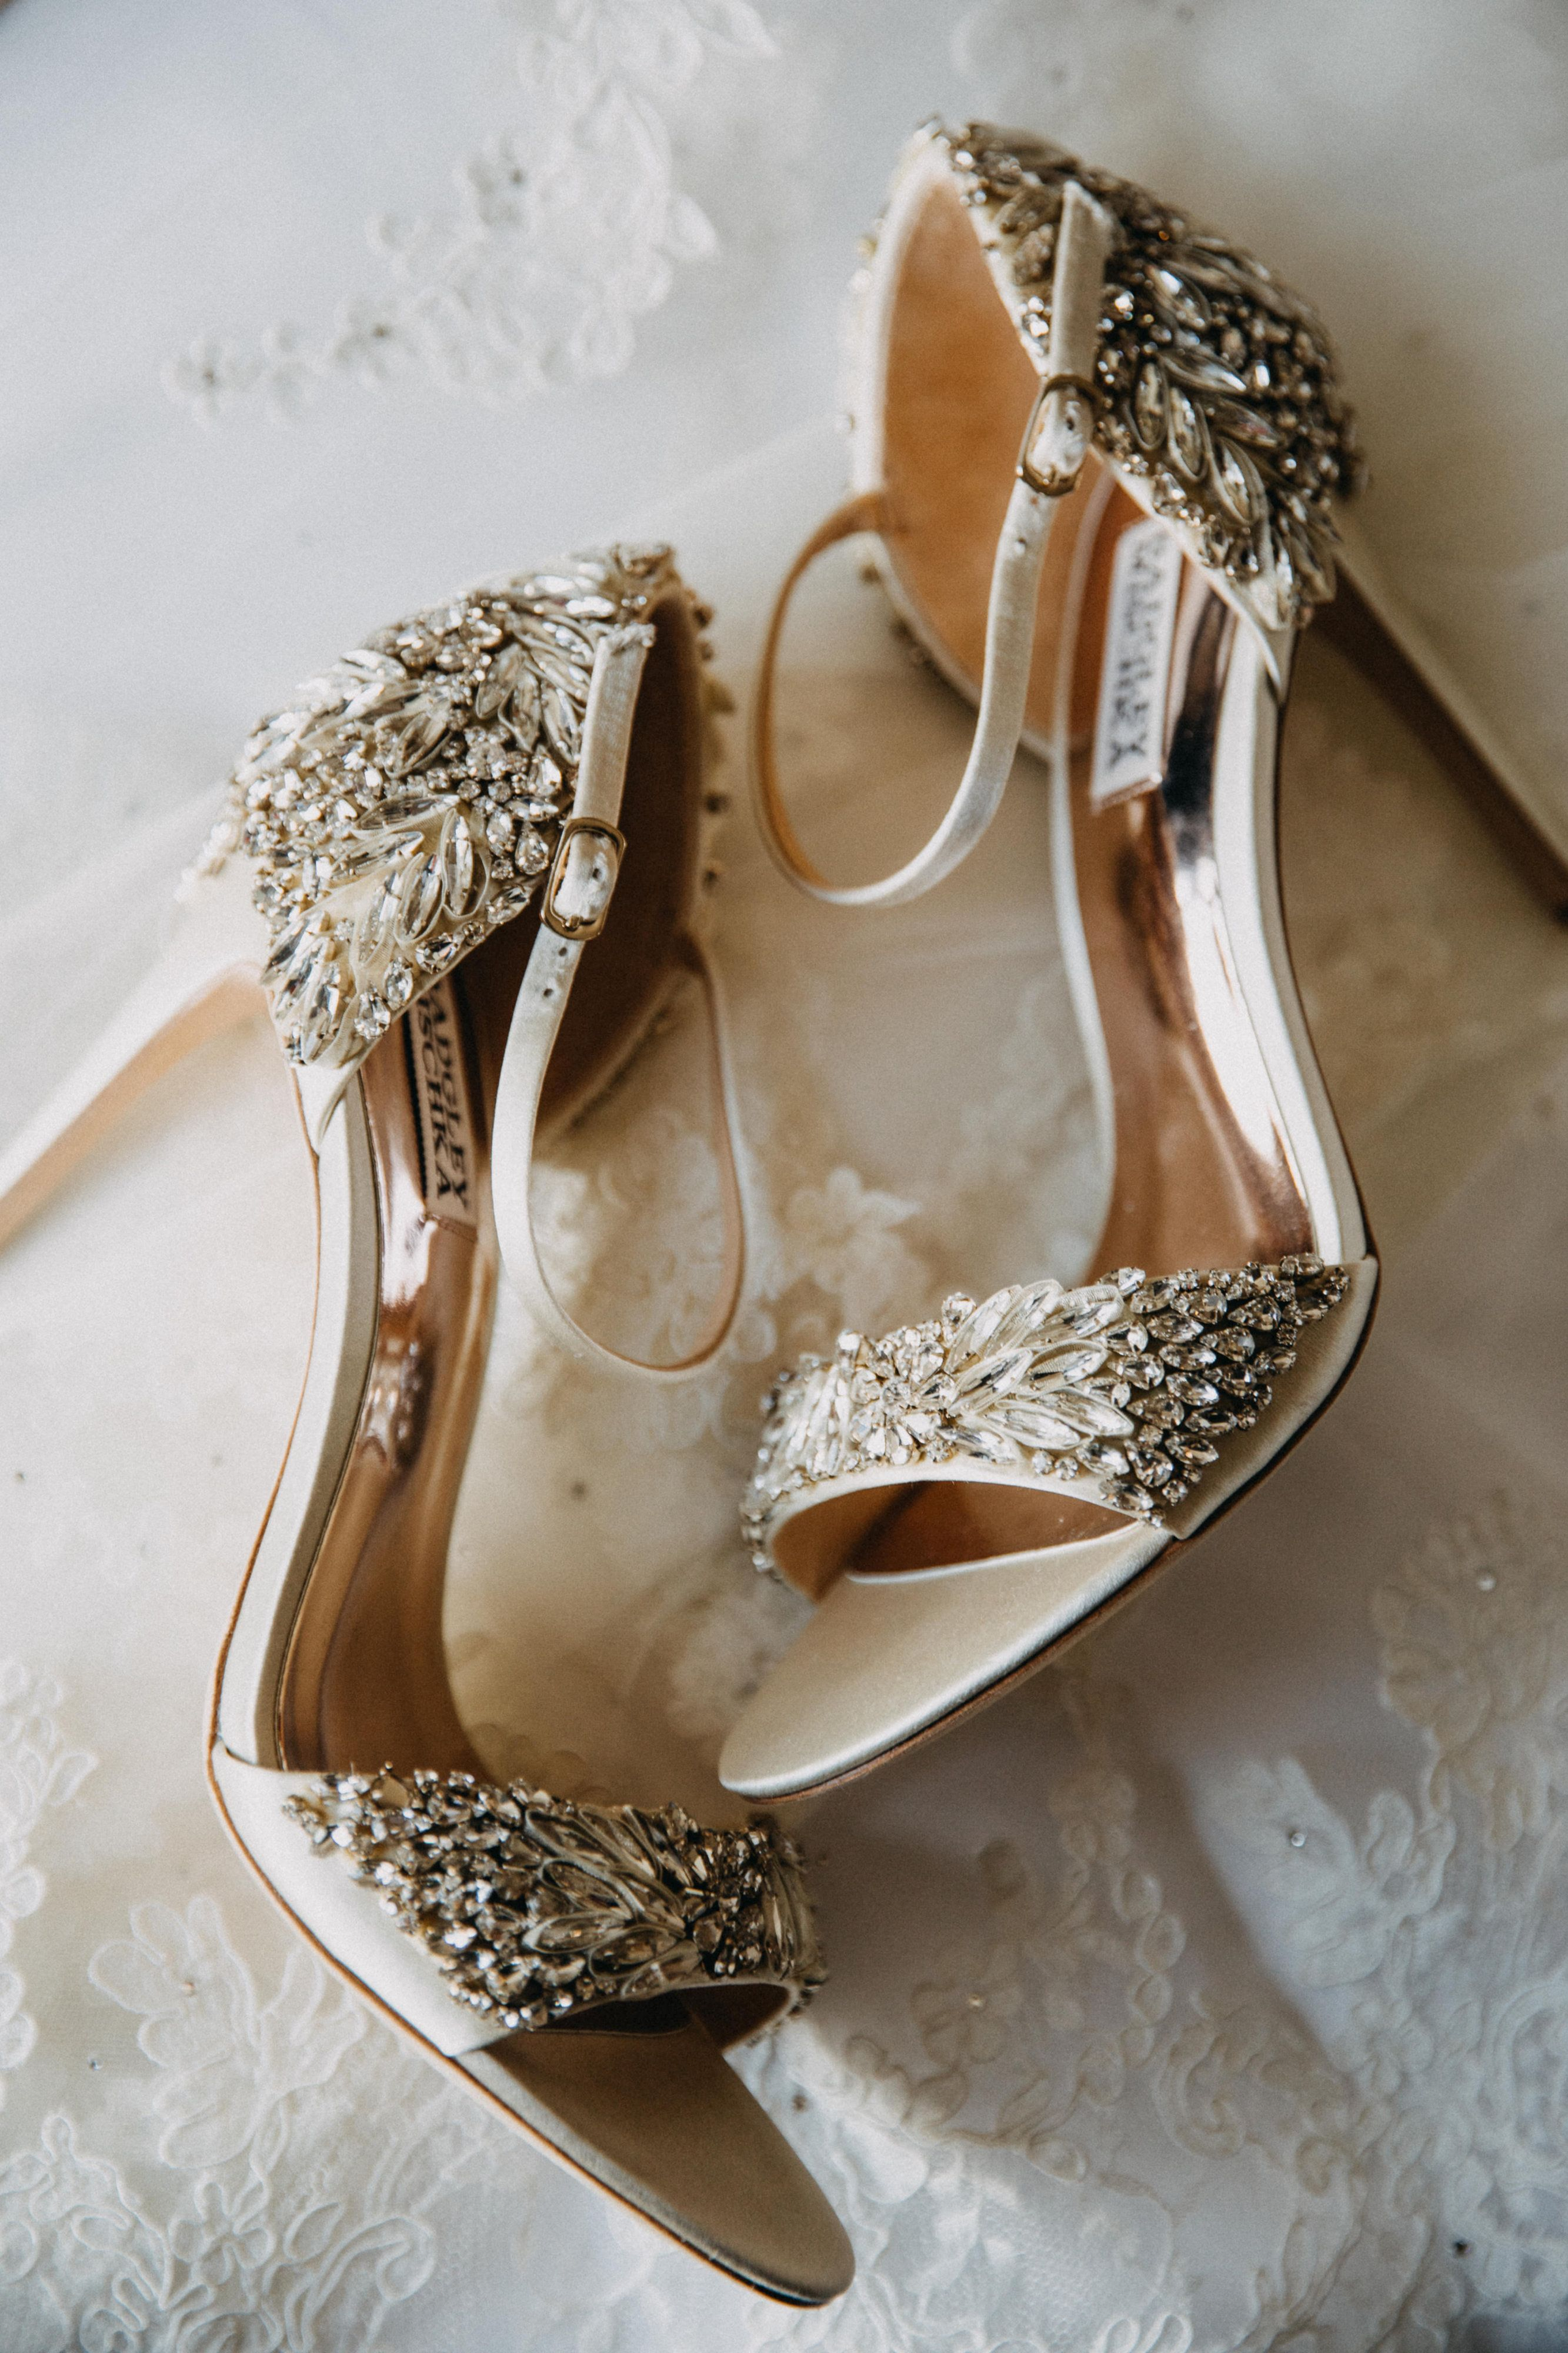 Designer Wedding Shoes For The Bride Tampa Wedding Photographer In 2020 Wedding Shoes Designer Wedding Shoes Chic Fall Fashion